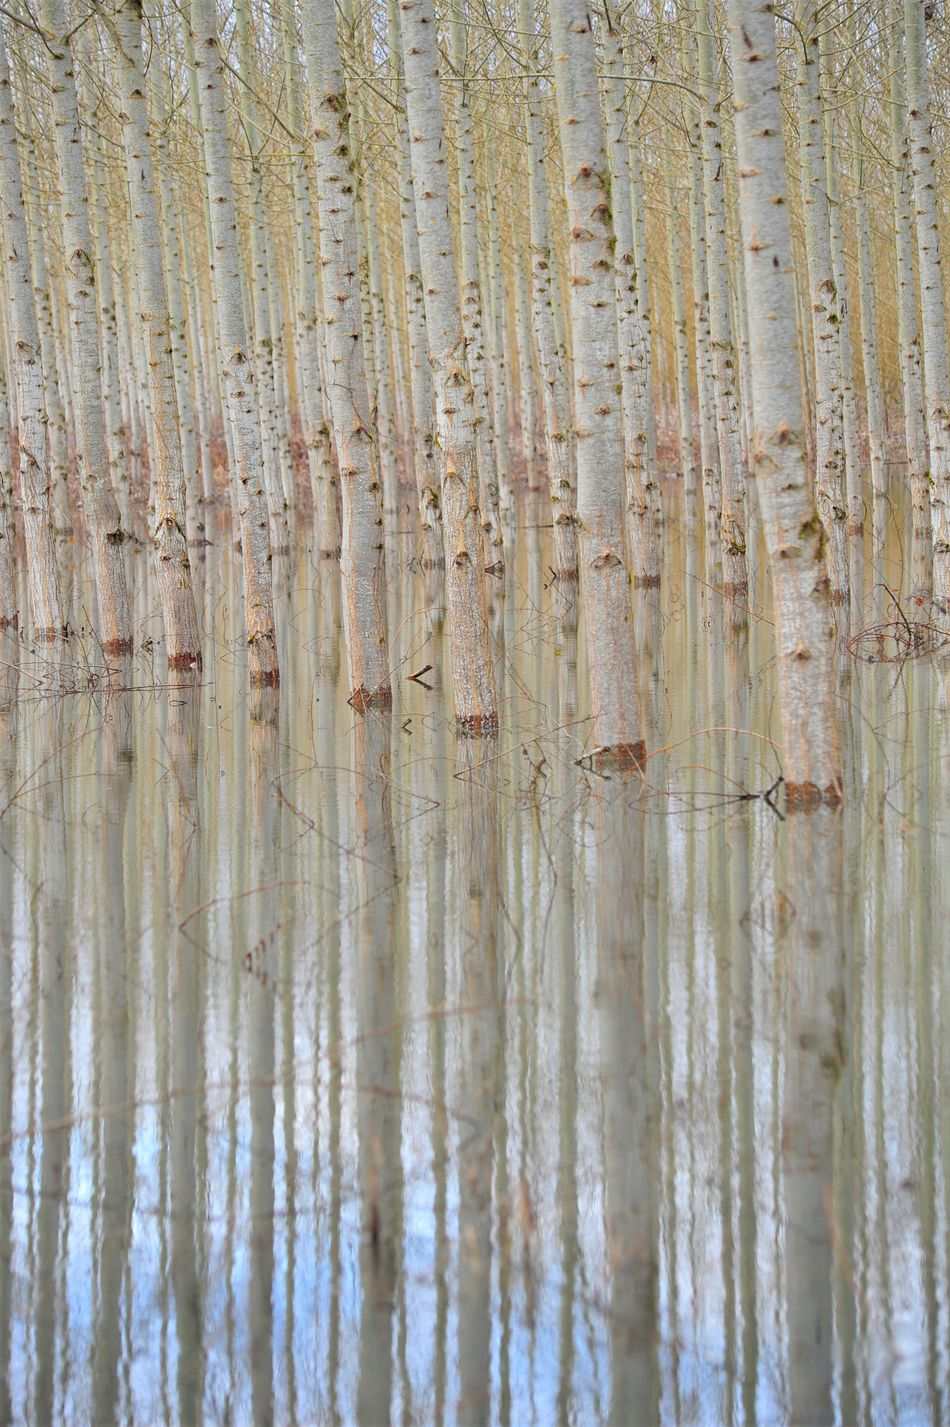 Backgrounds Beauty In Nature Close-up Cottonwood Trees Day In A Row Nature No People Outdoors Reflection Tranquility Water If Trees Could Speak